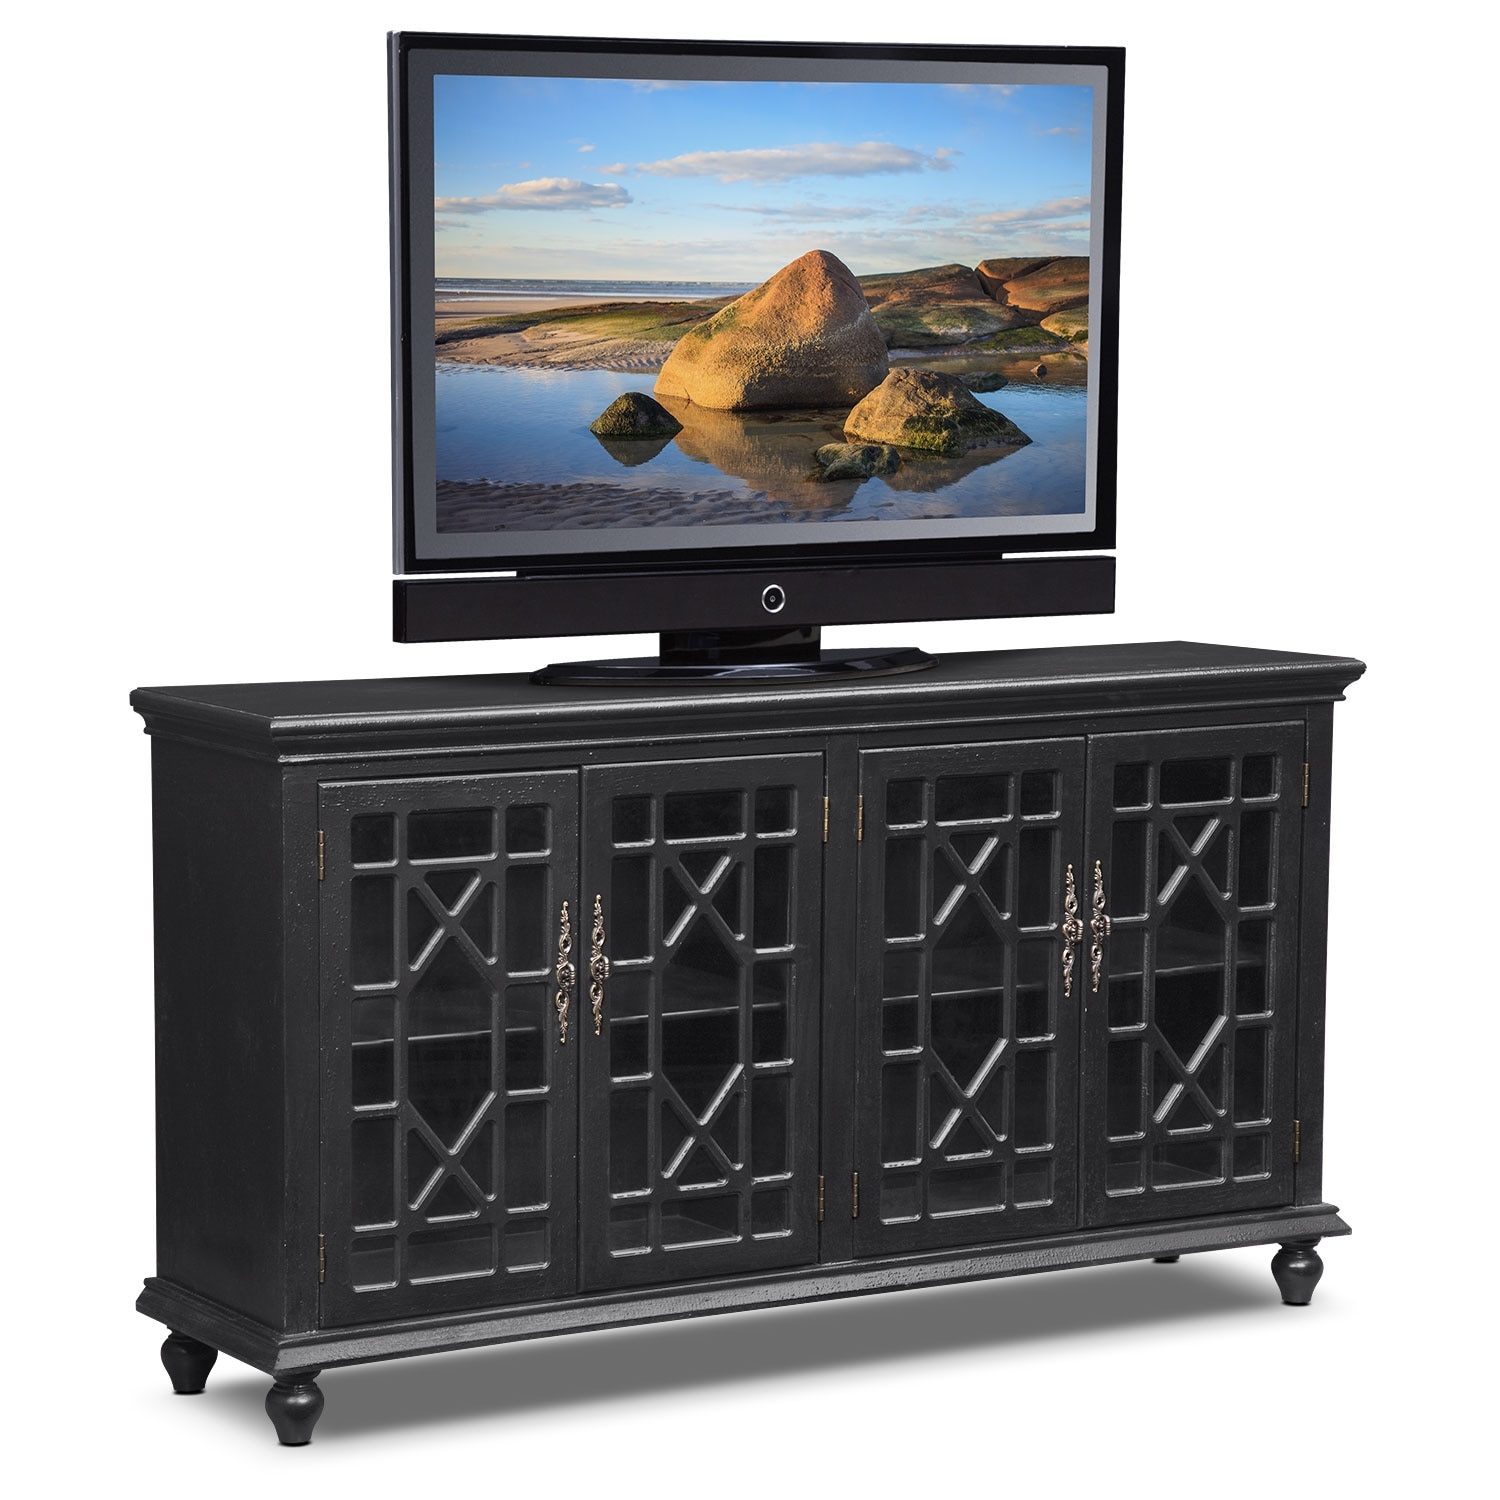 Grenoble Media Credenza - Black